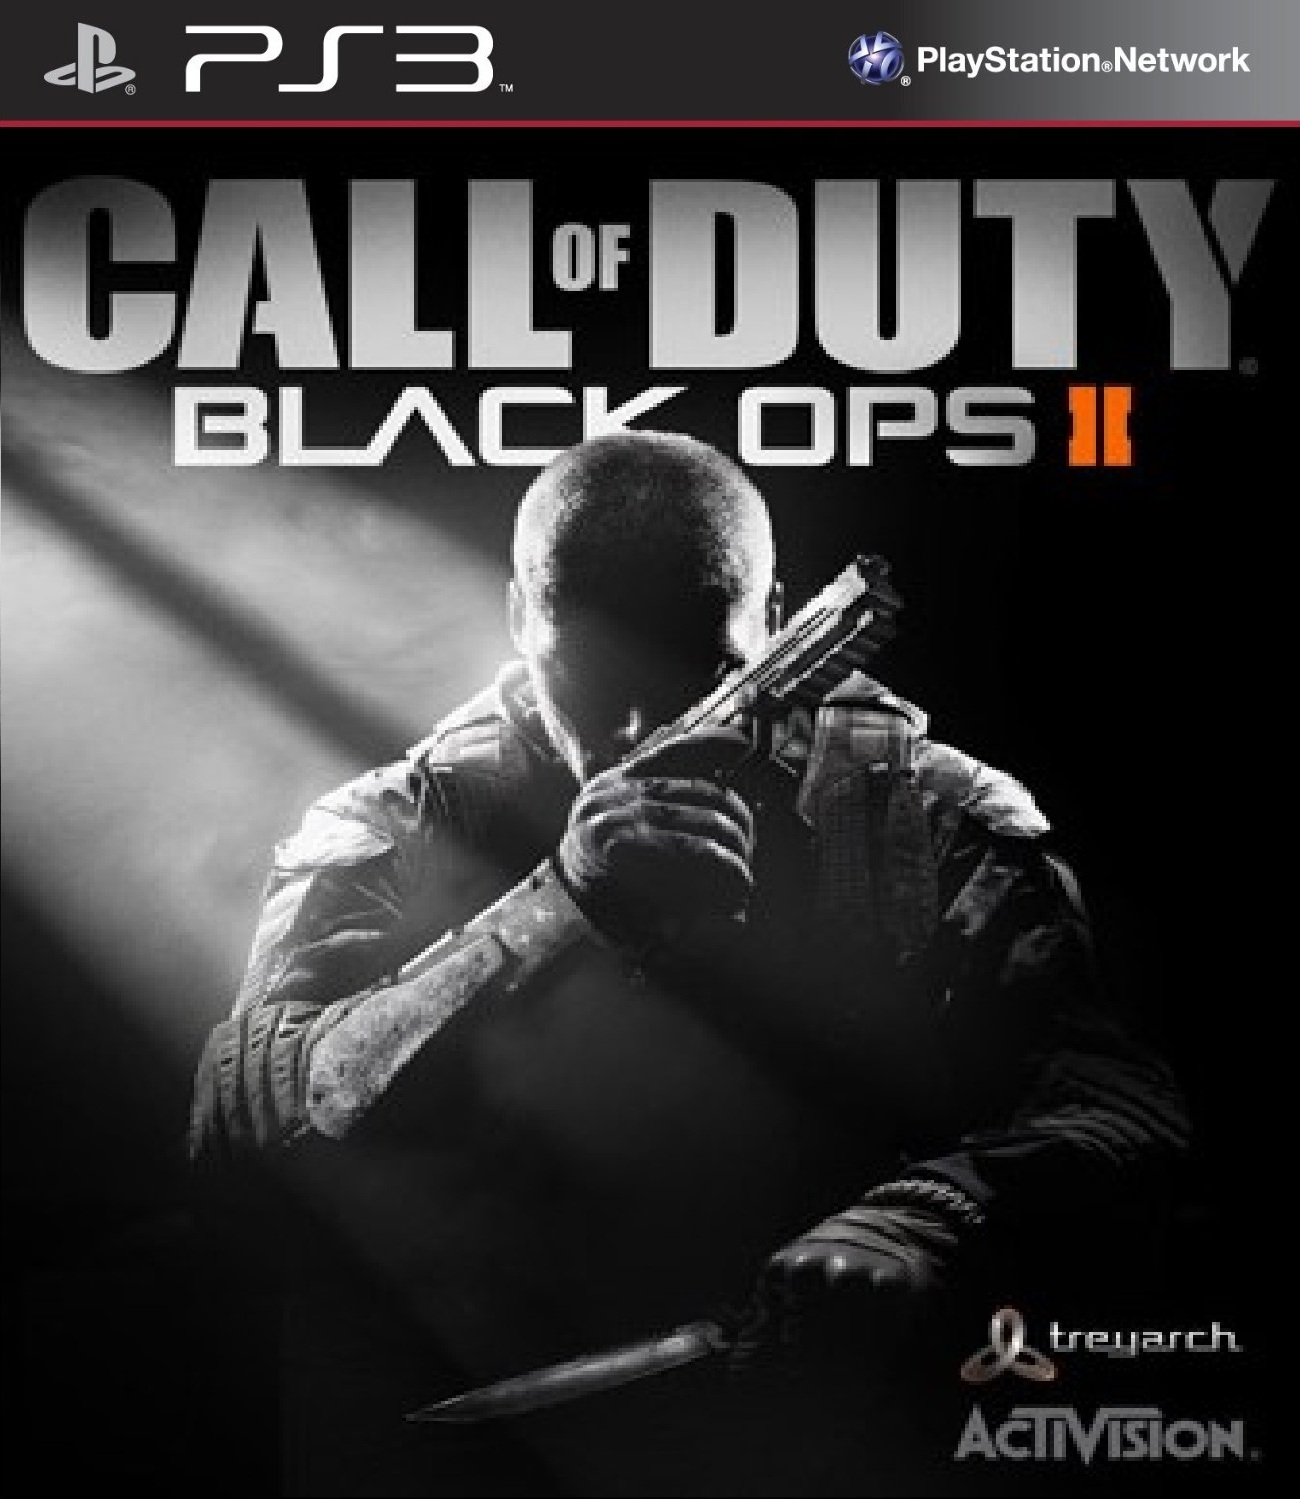 Another Year, Another Call of Duty. Black Ops 2 builds on the first in